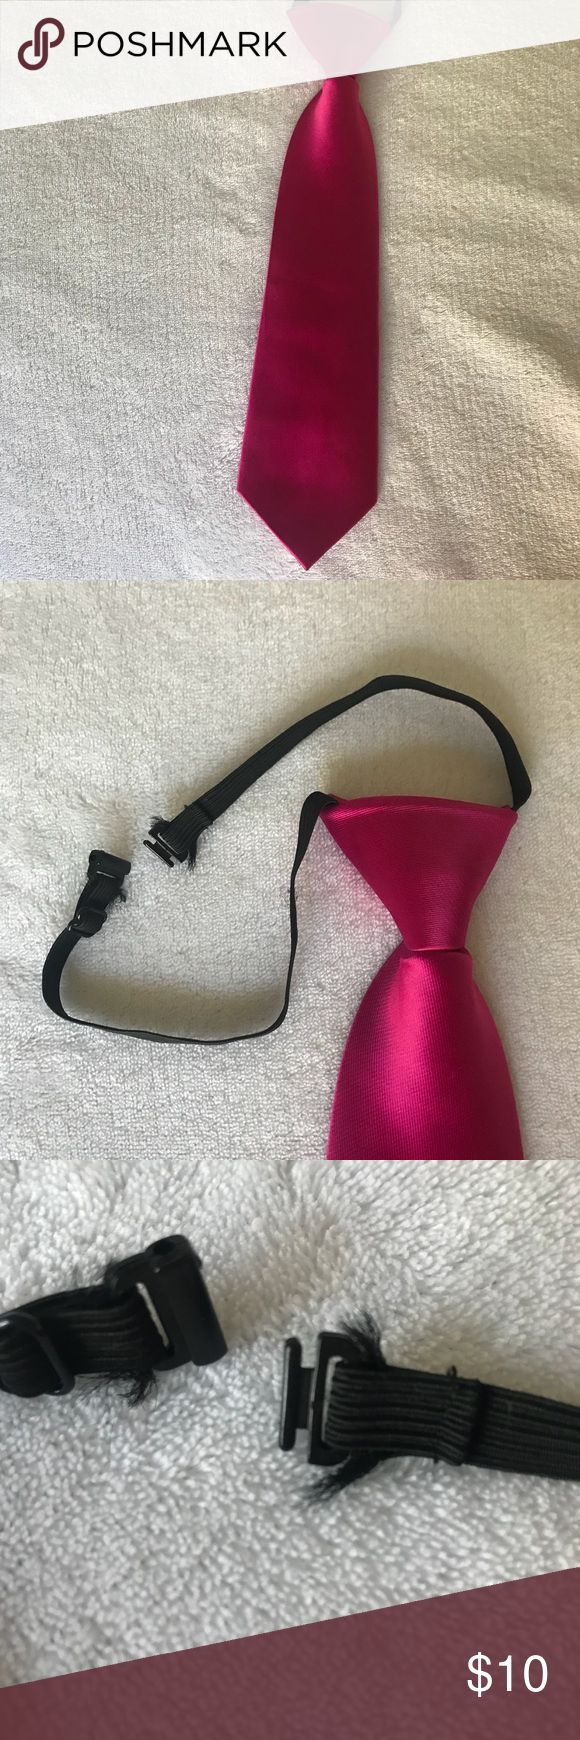 Short Pink clip on tie Short Pink clip on tie; brand: Fouger USA; boys tie Accessories Ties